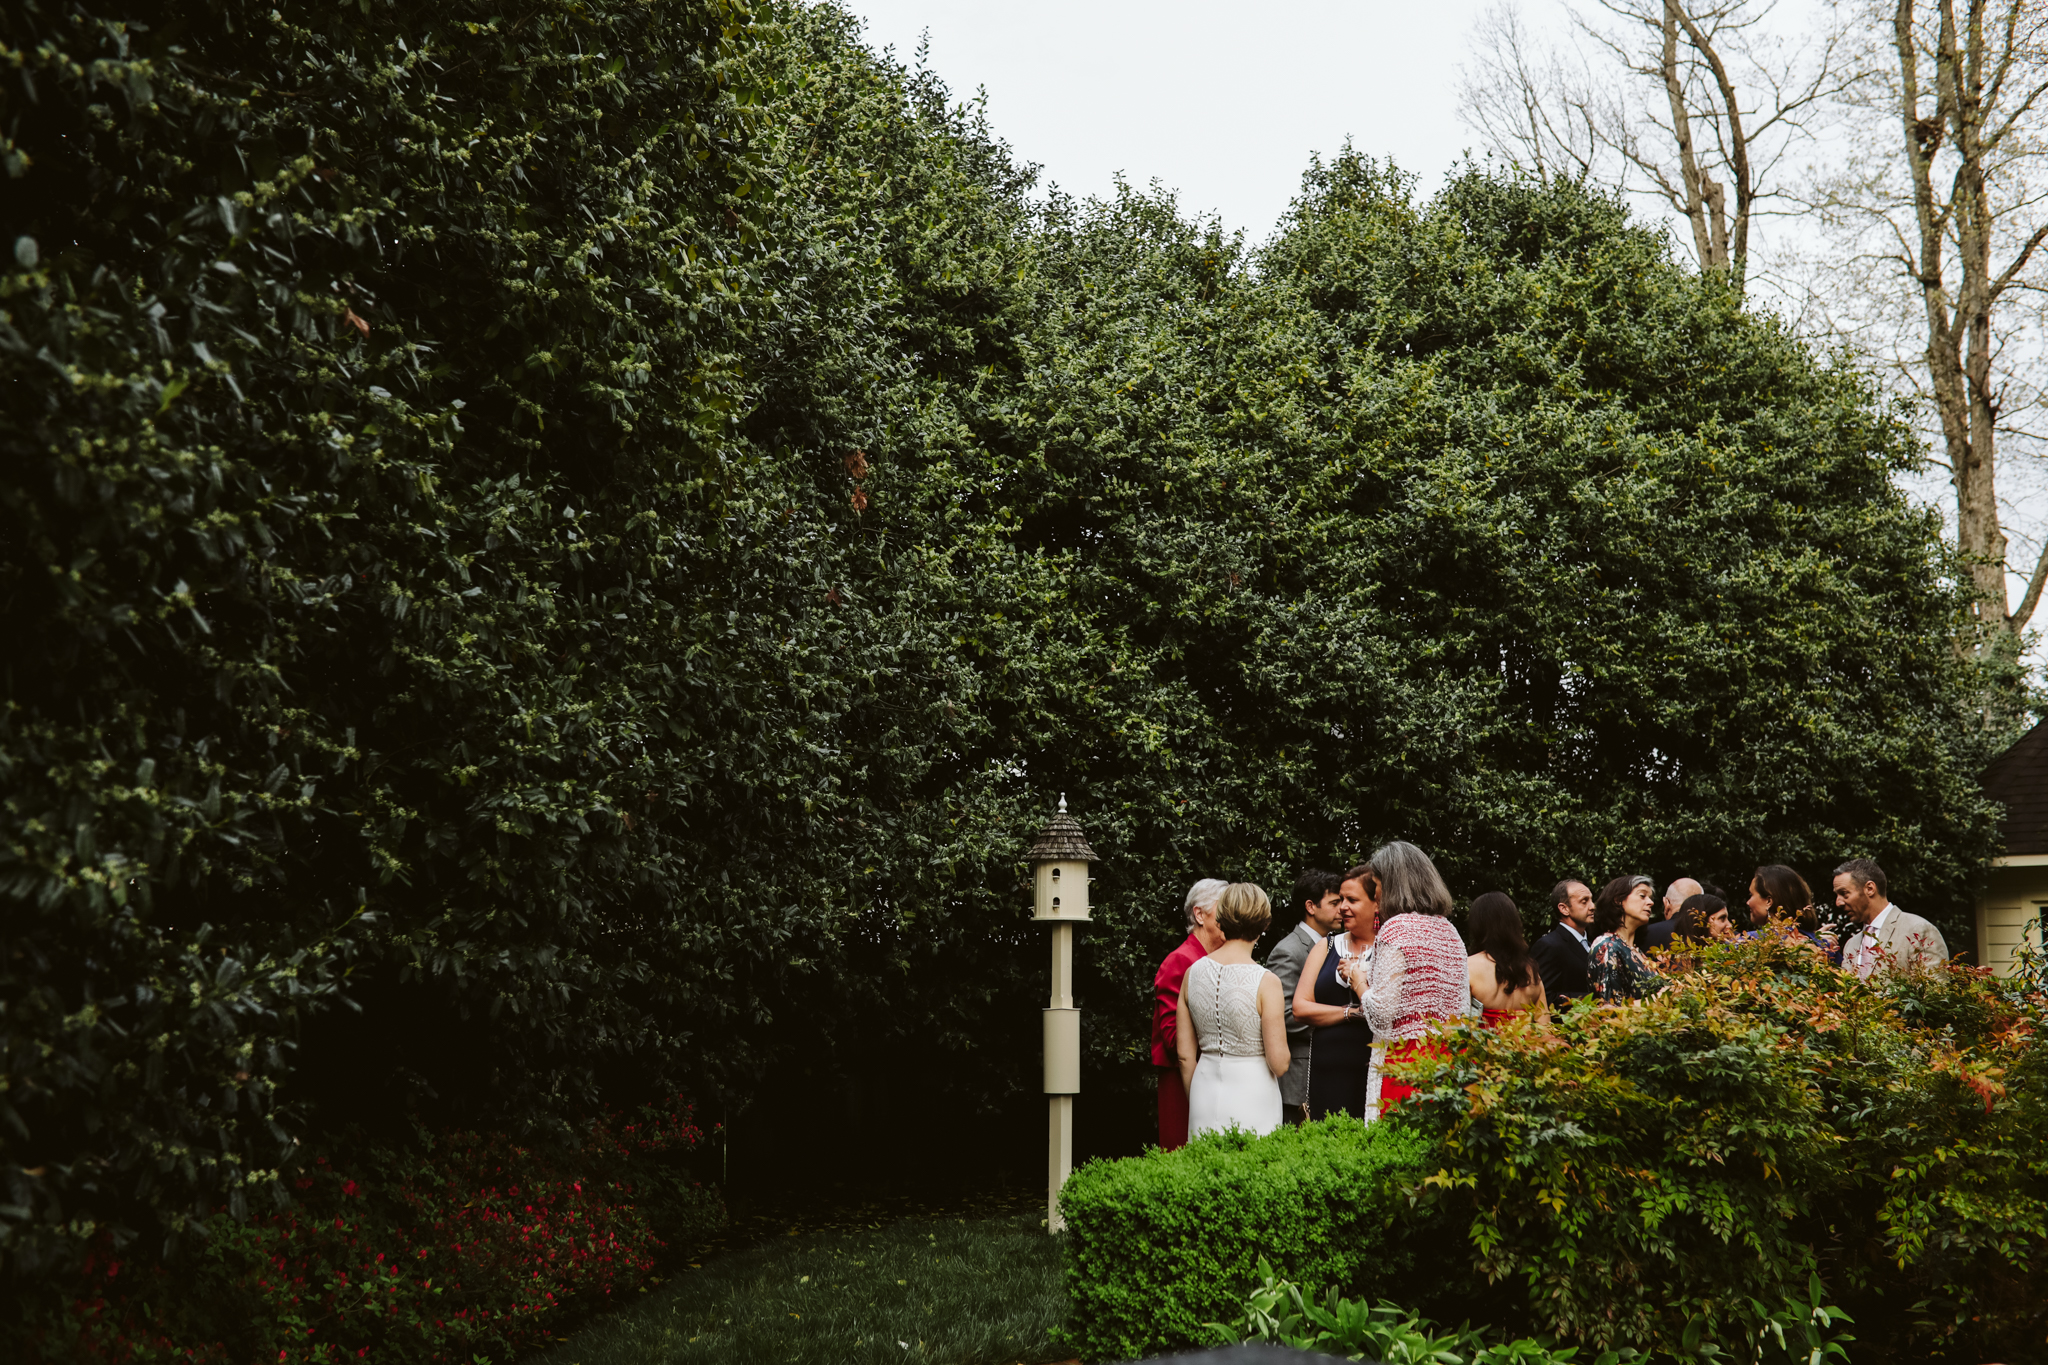 cook_wedding_richmond_virginia_rebecca_burt_photography-81.jpg